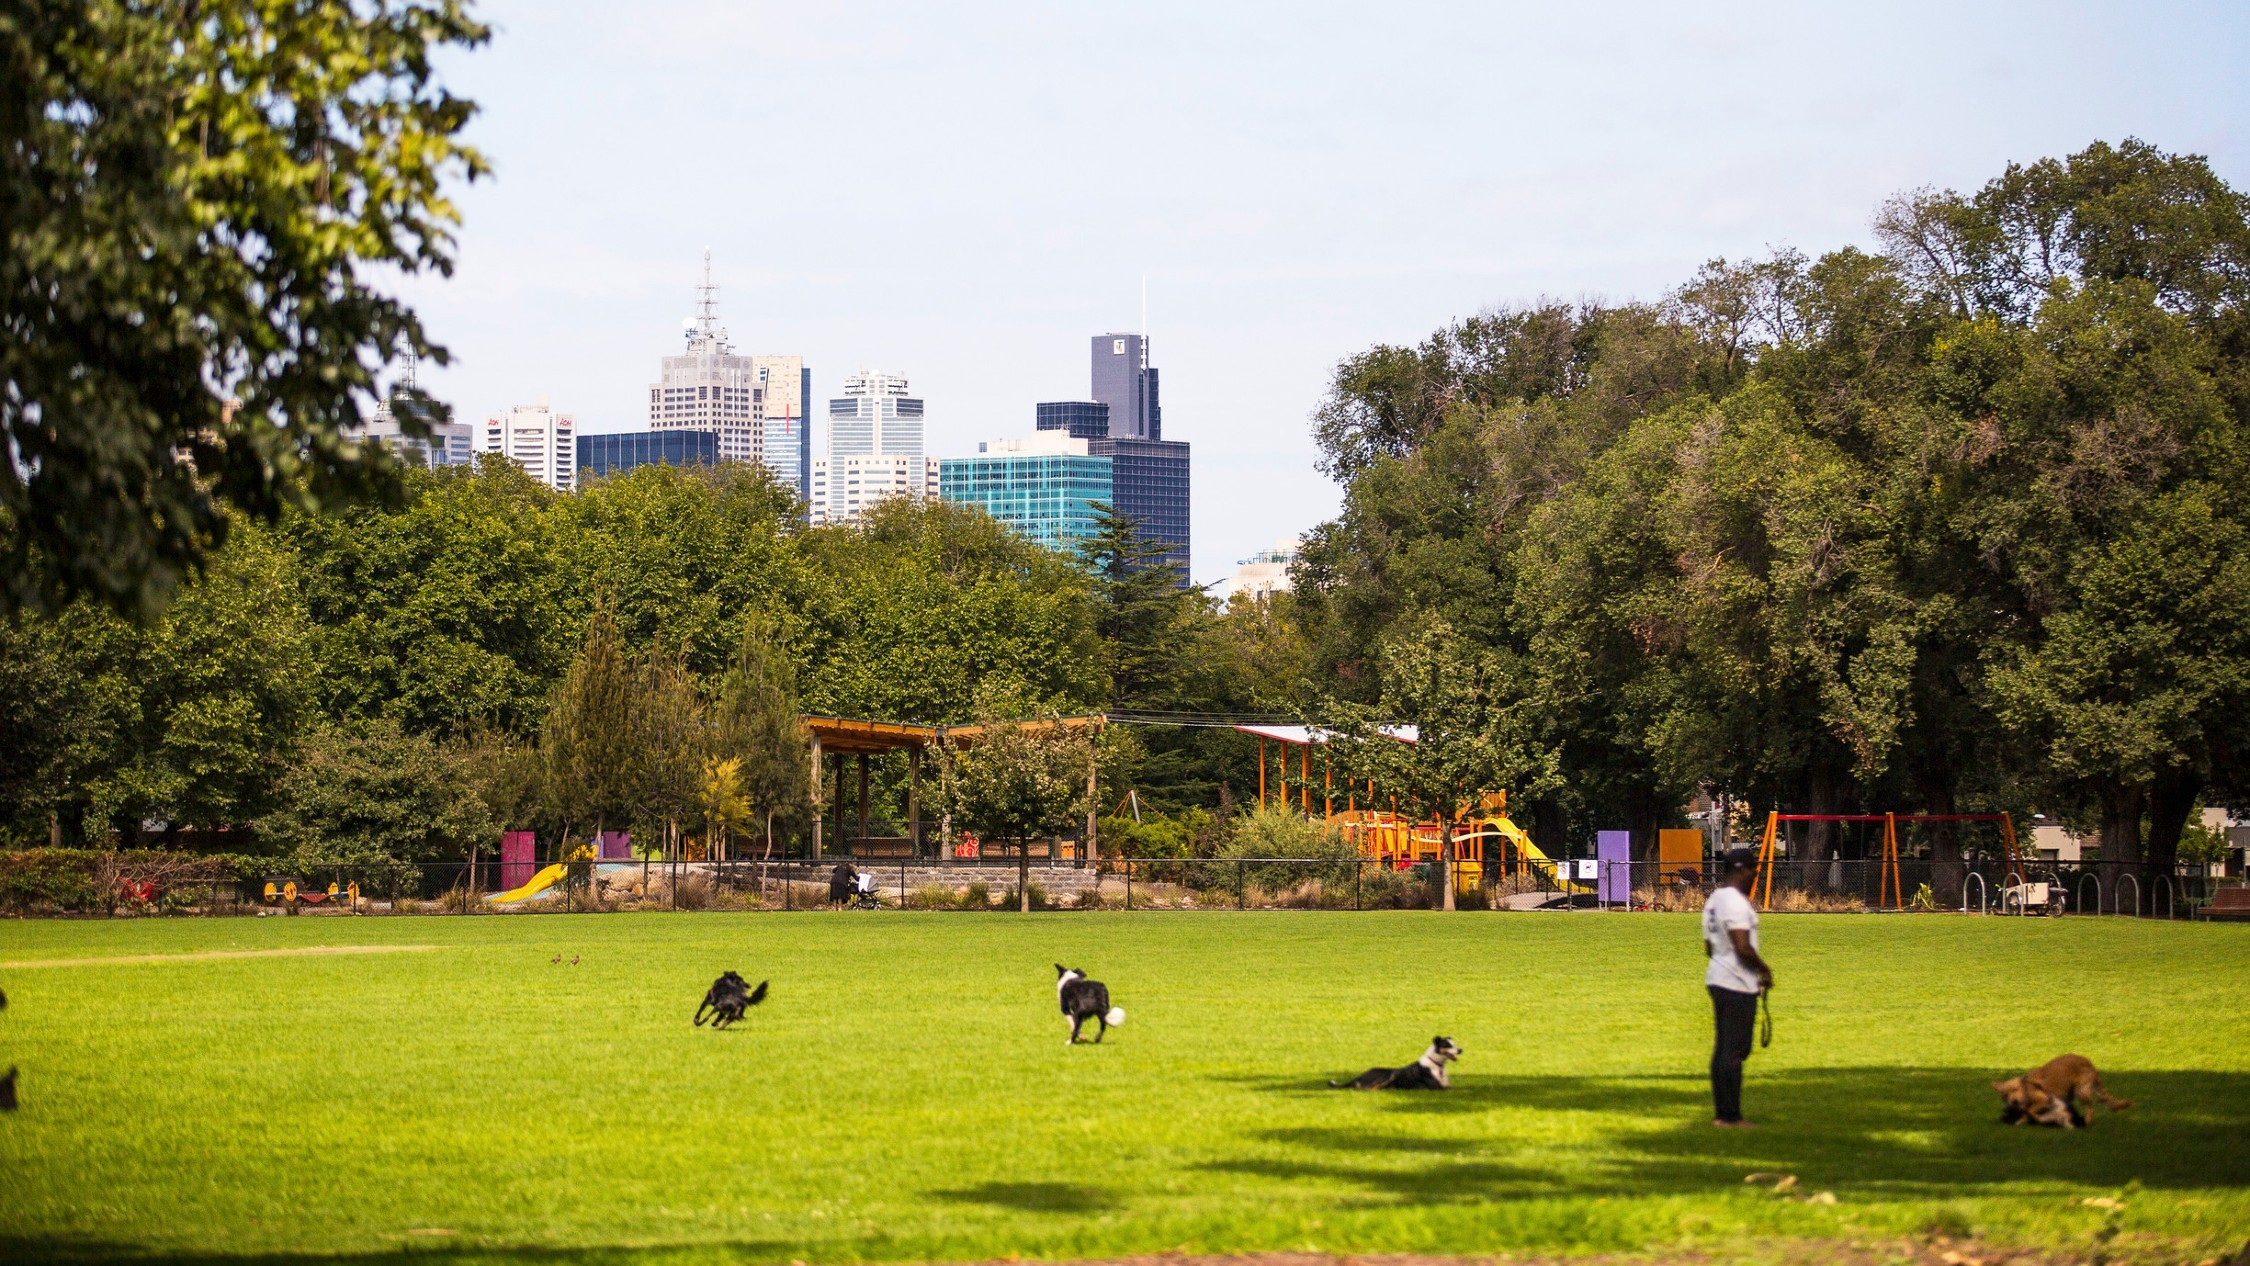 A clearing at Edinburgh Gardens in which four dogs are running around. There is a playground in the background